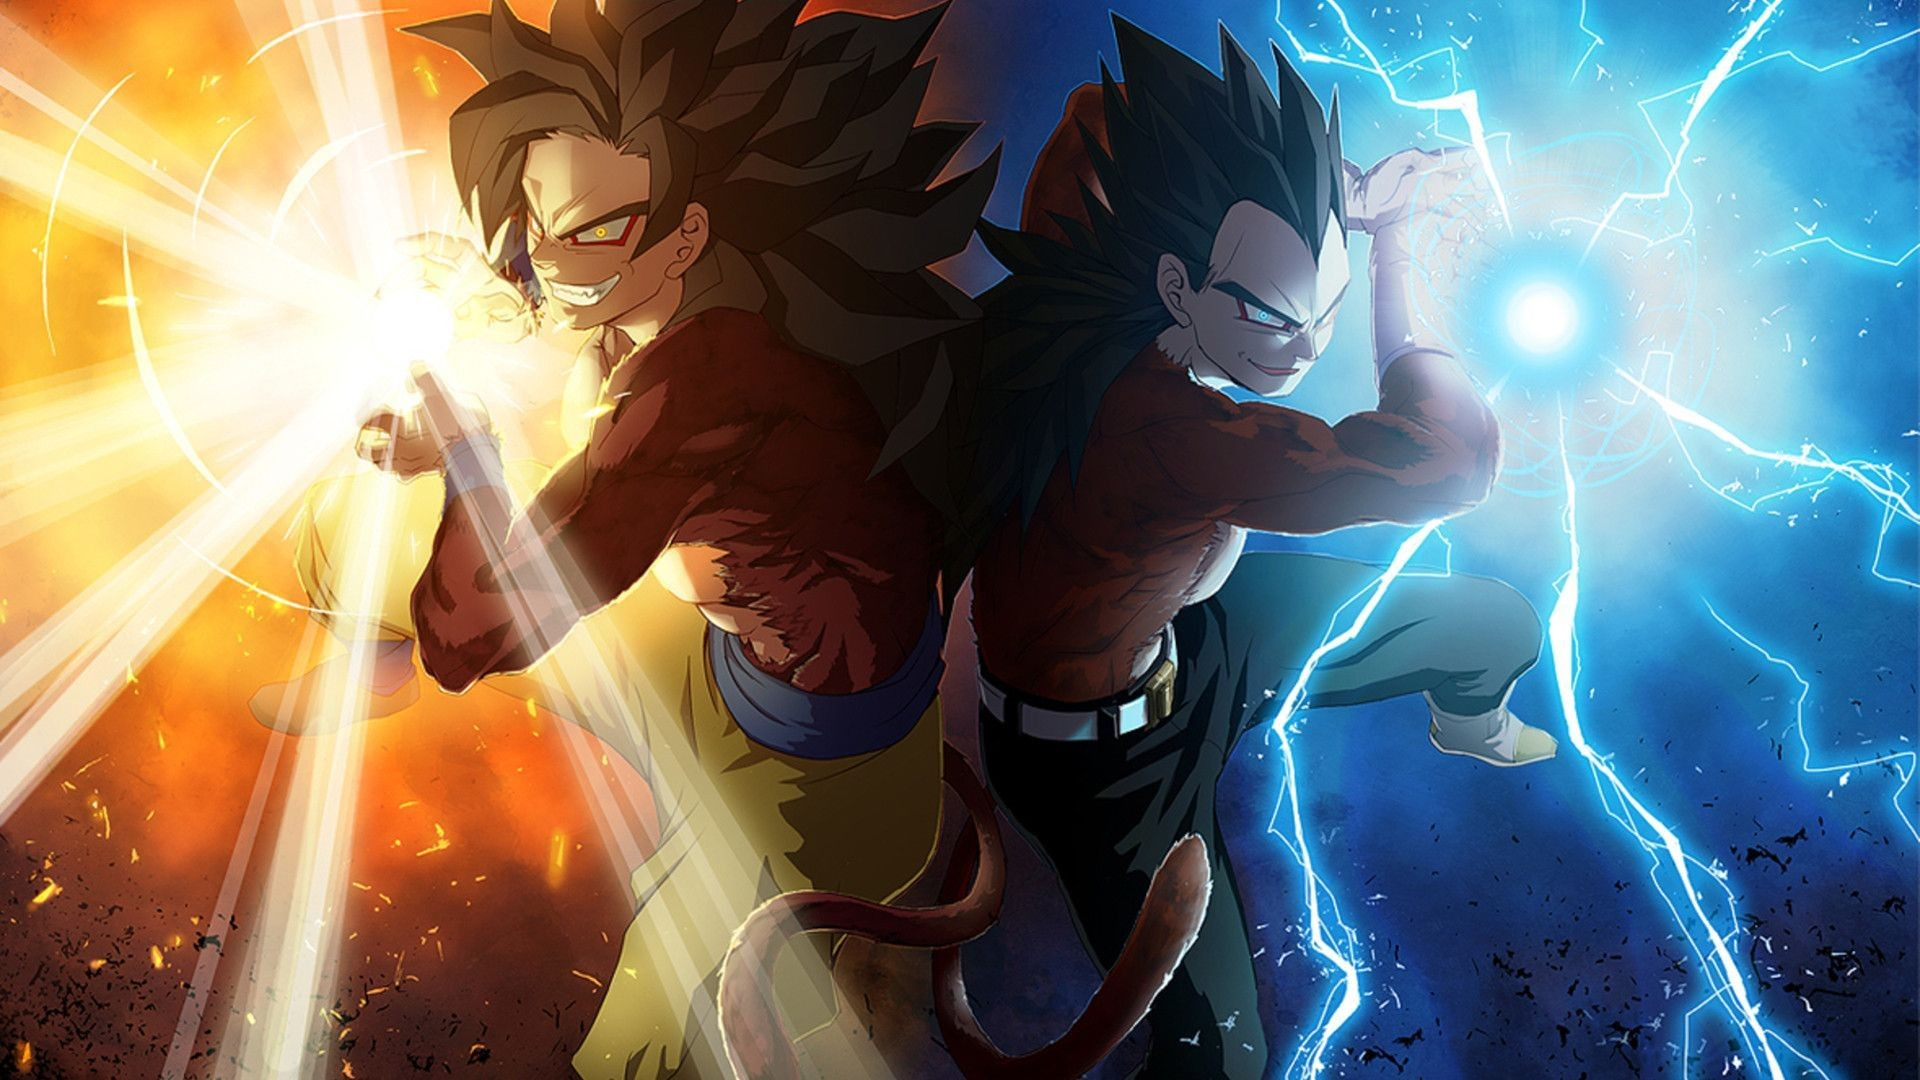 Dragon Ball Wallpaper Download Free Stunning Backgrounds For